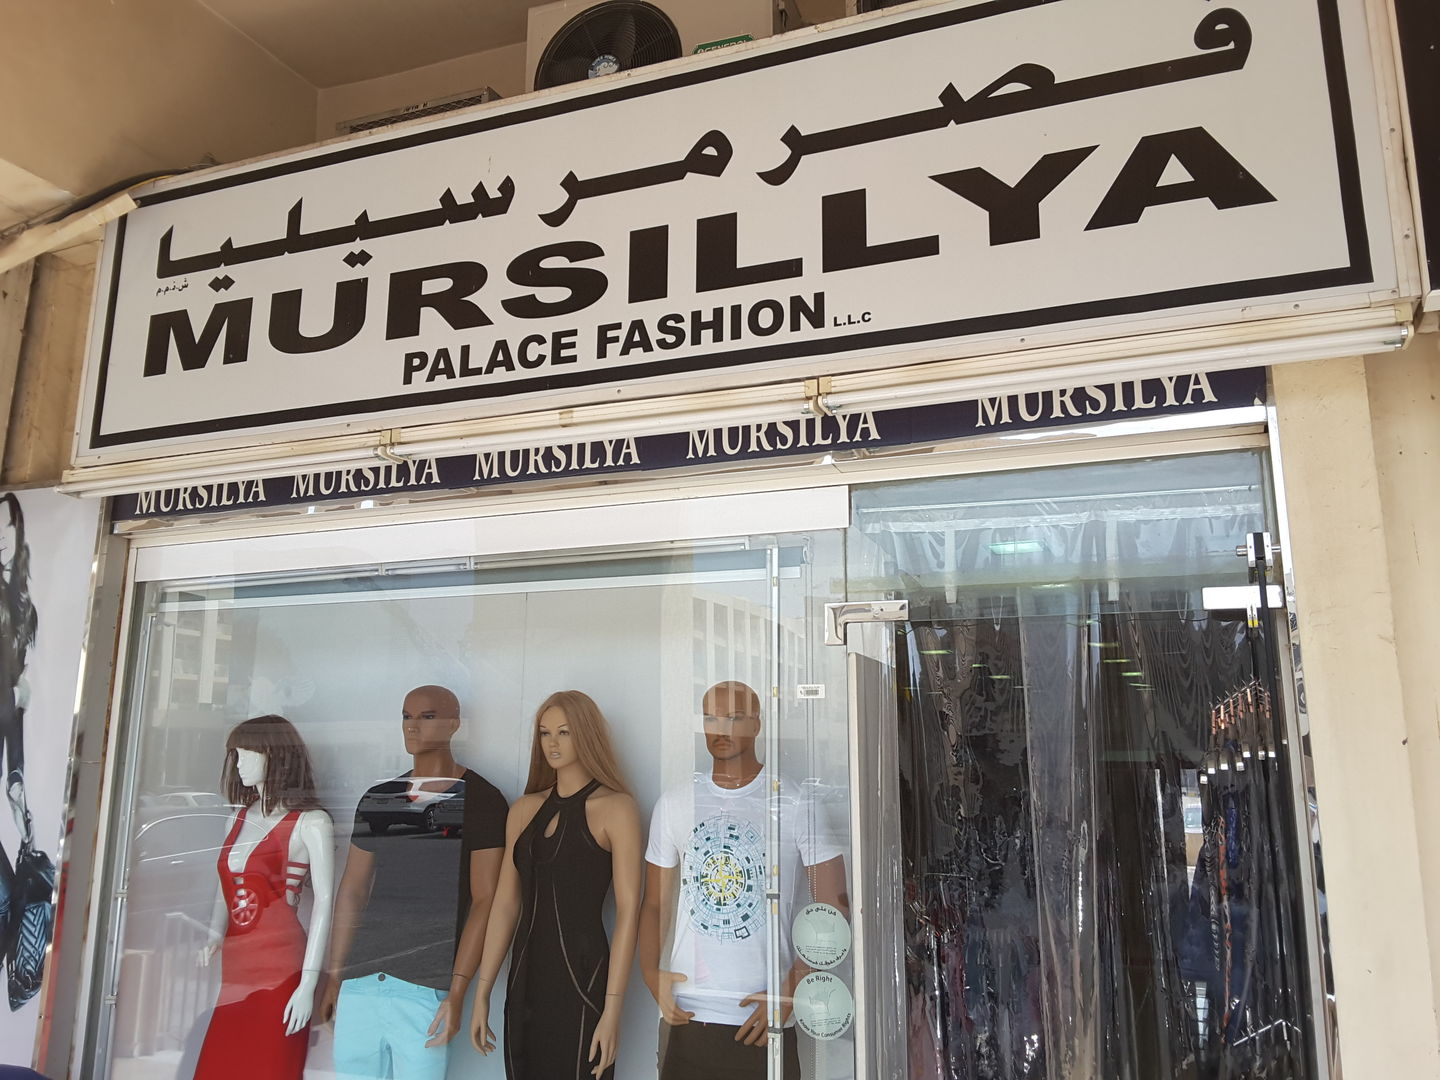 HiDubai-business-mursillya-palace-fashion-shopping-apparel-al-karama-dubai-2